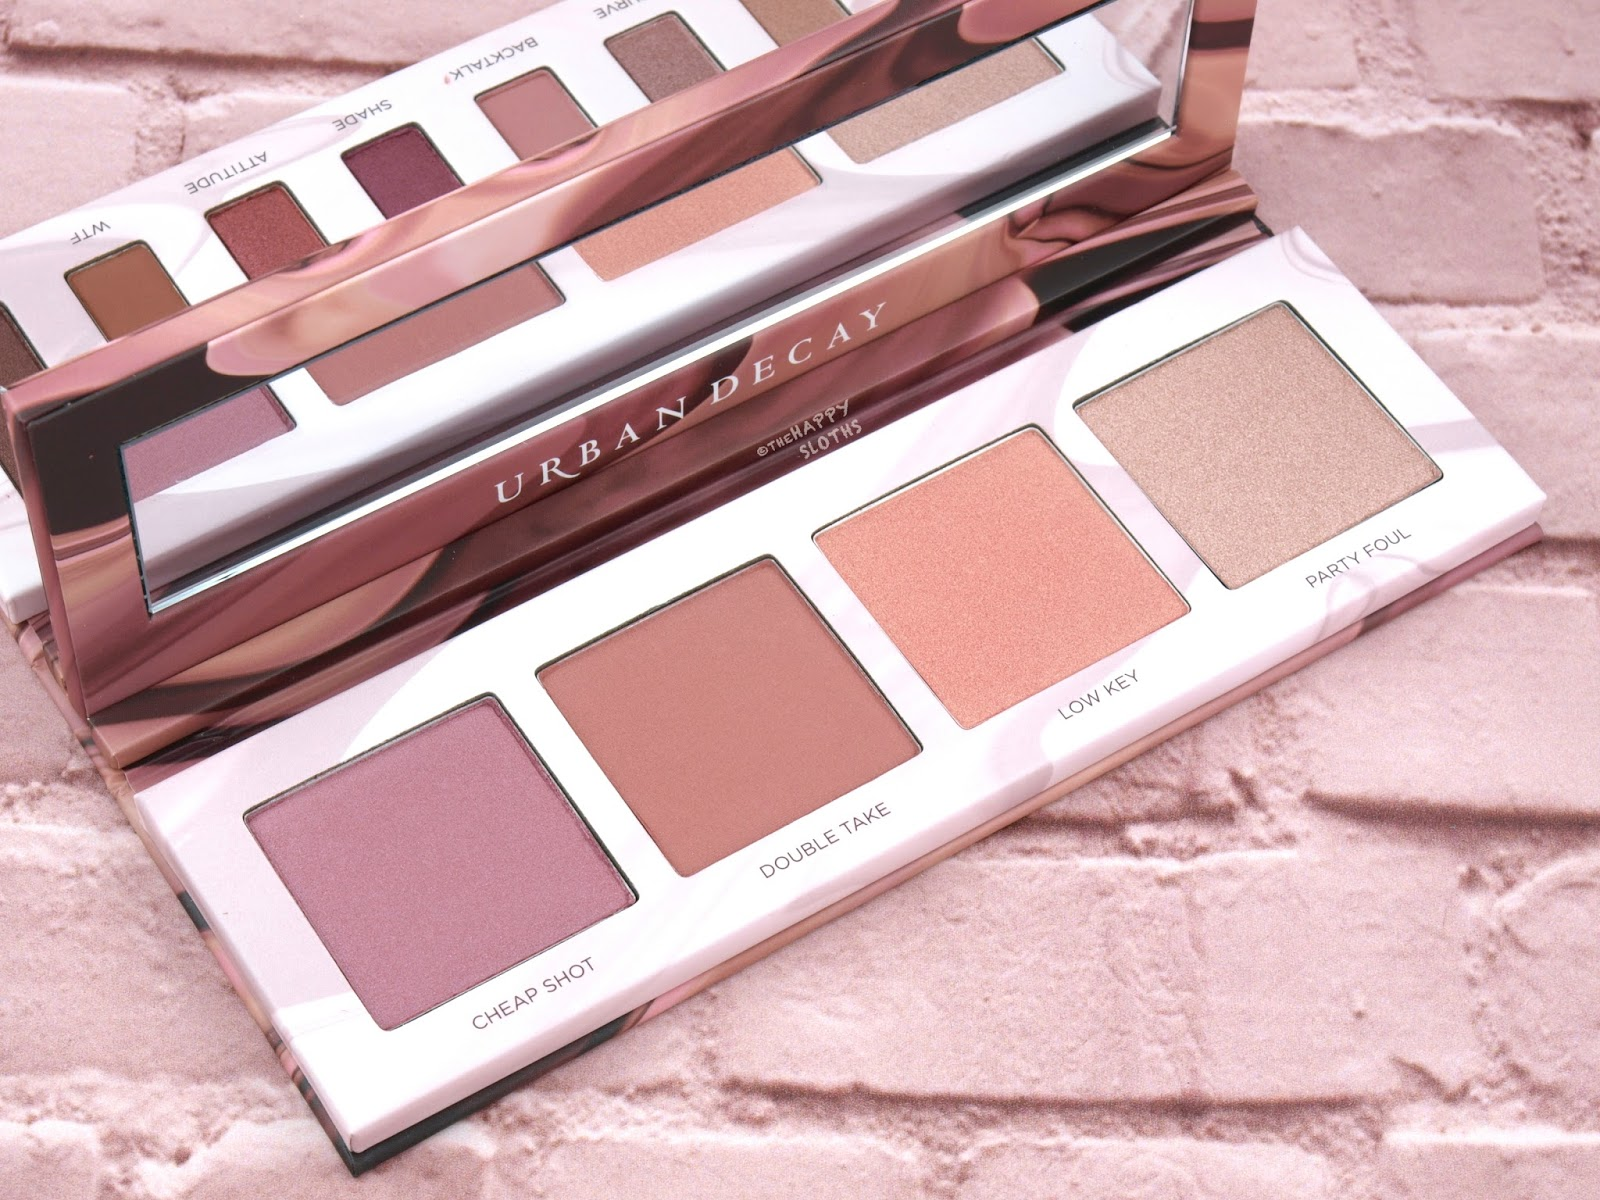 Urban Decay | Backtalk Eye & Face Palette: Review and Swatches